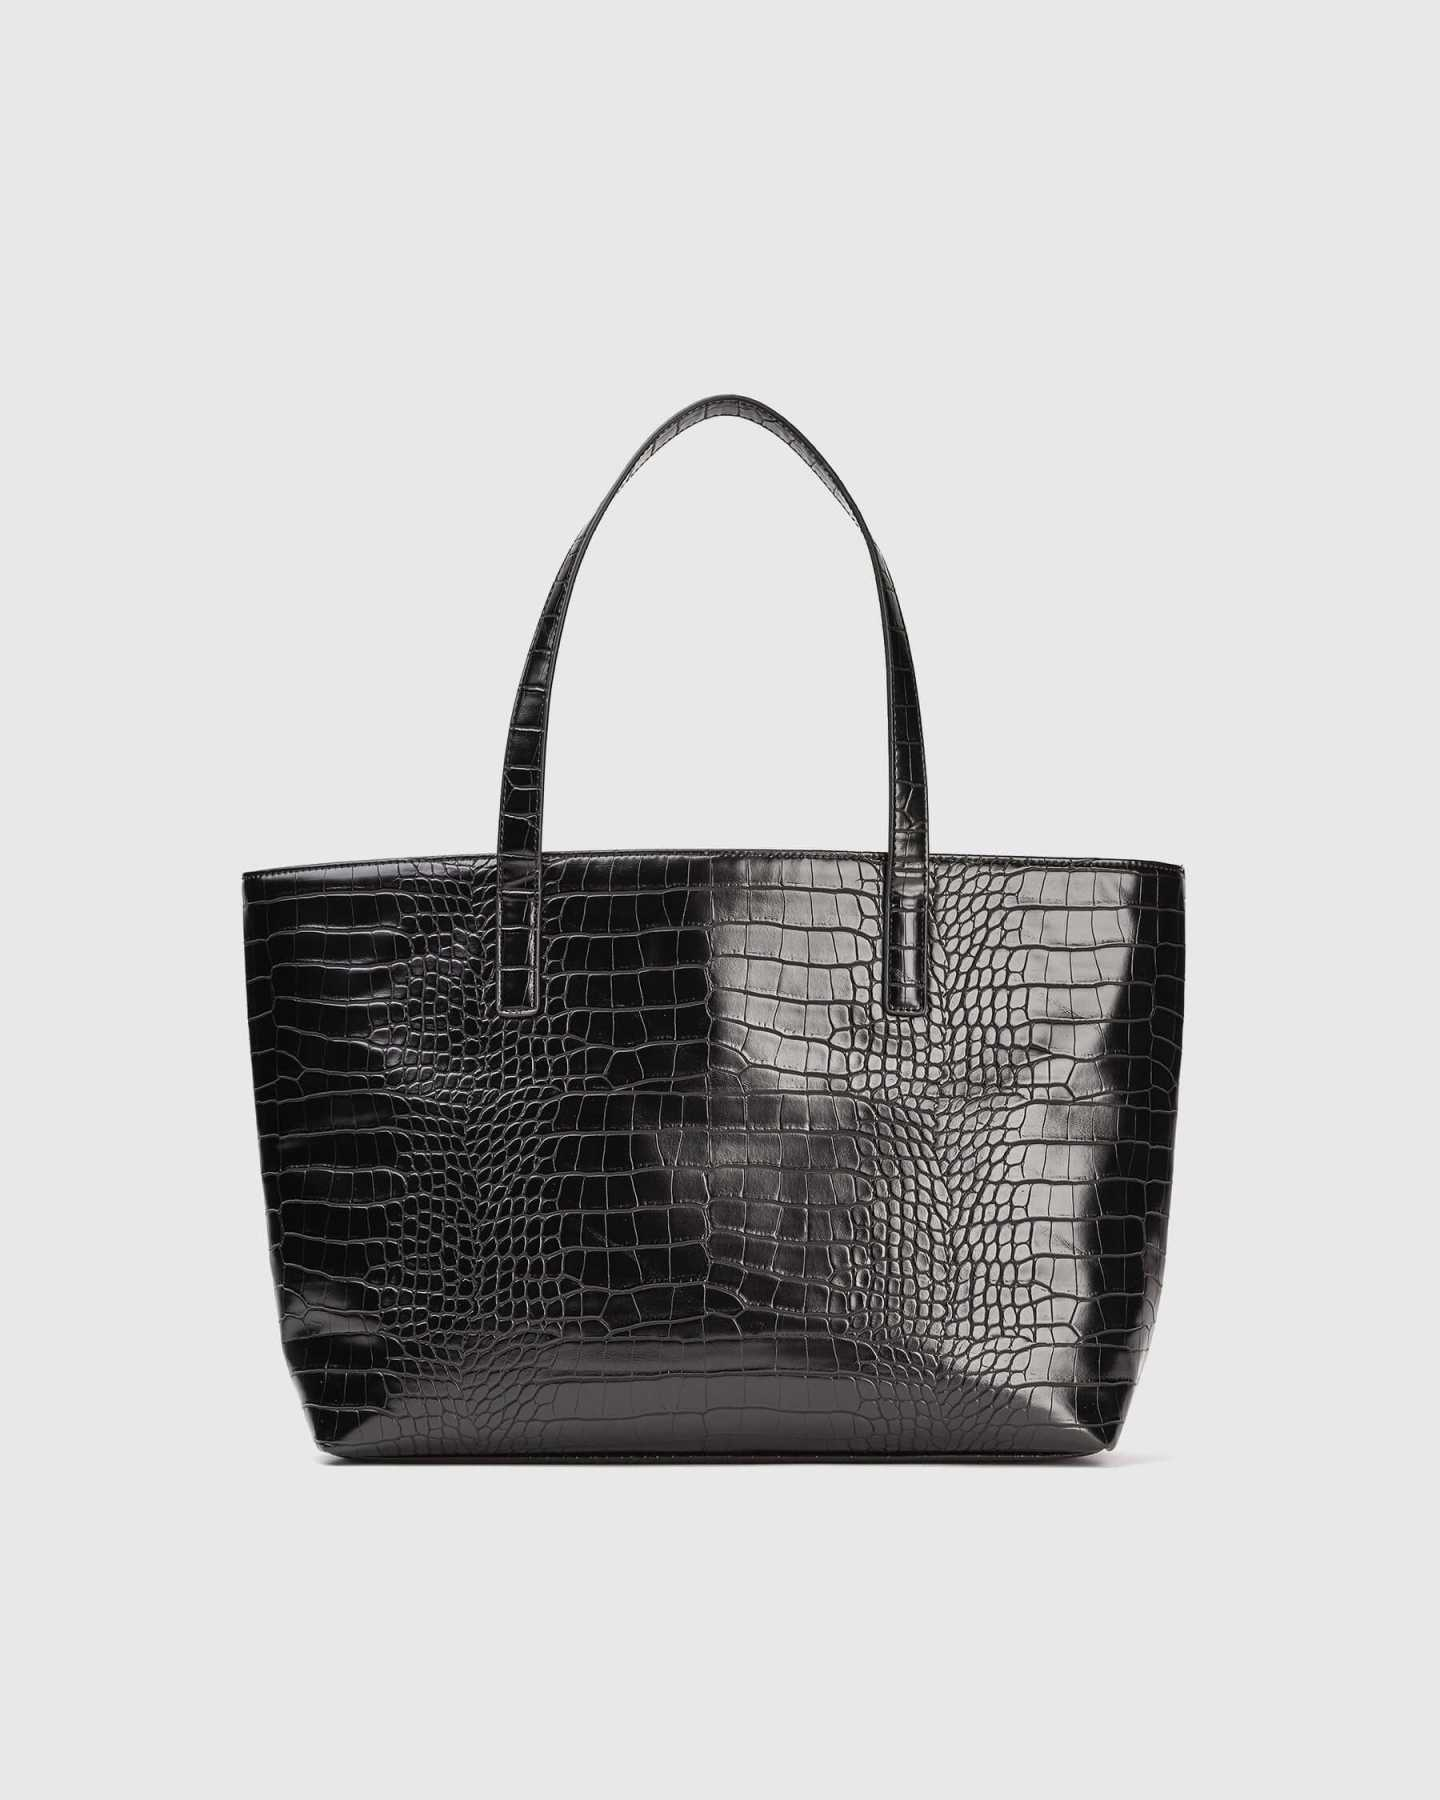 Pair With - Vegan Leather Tote - Black Croco